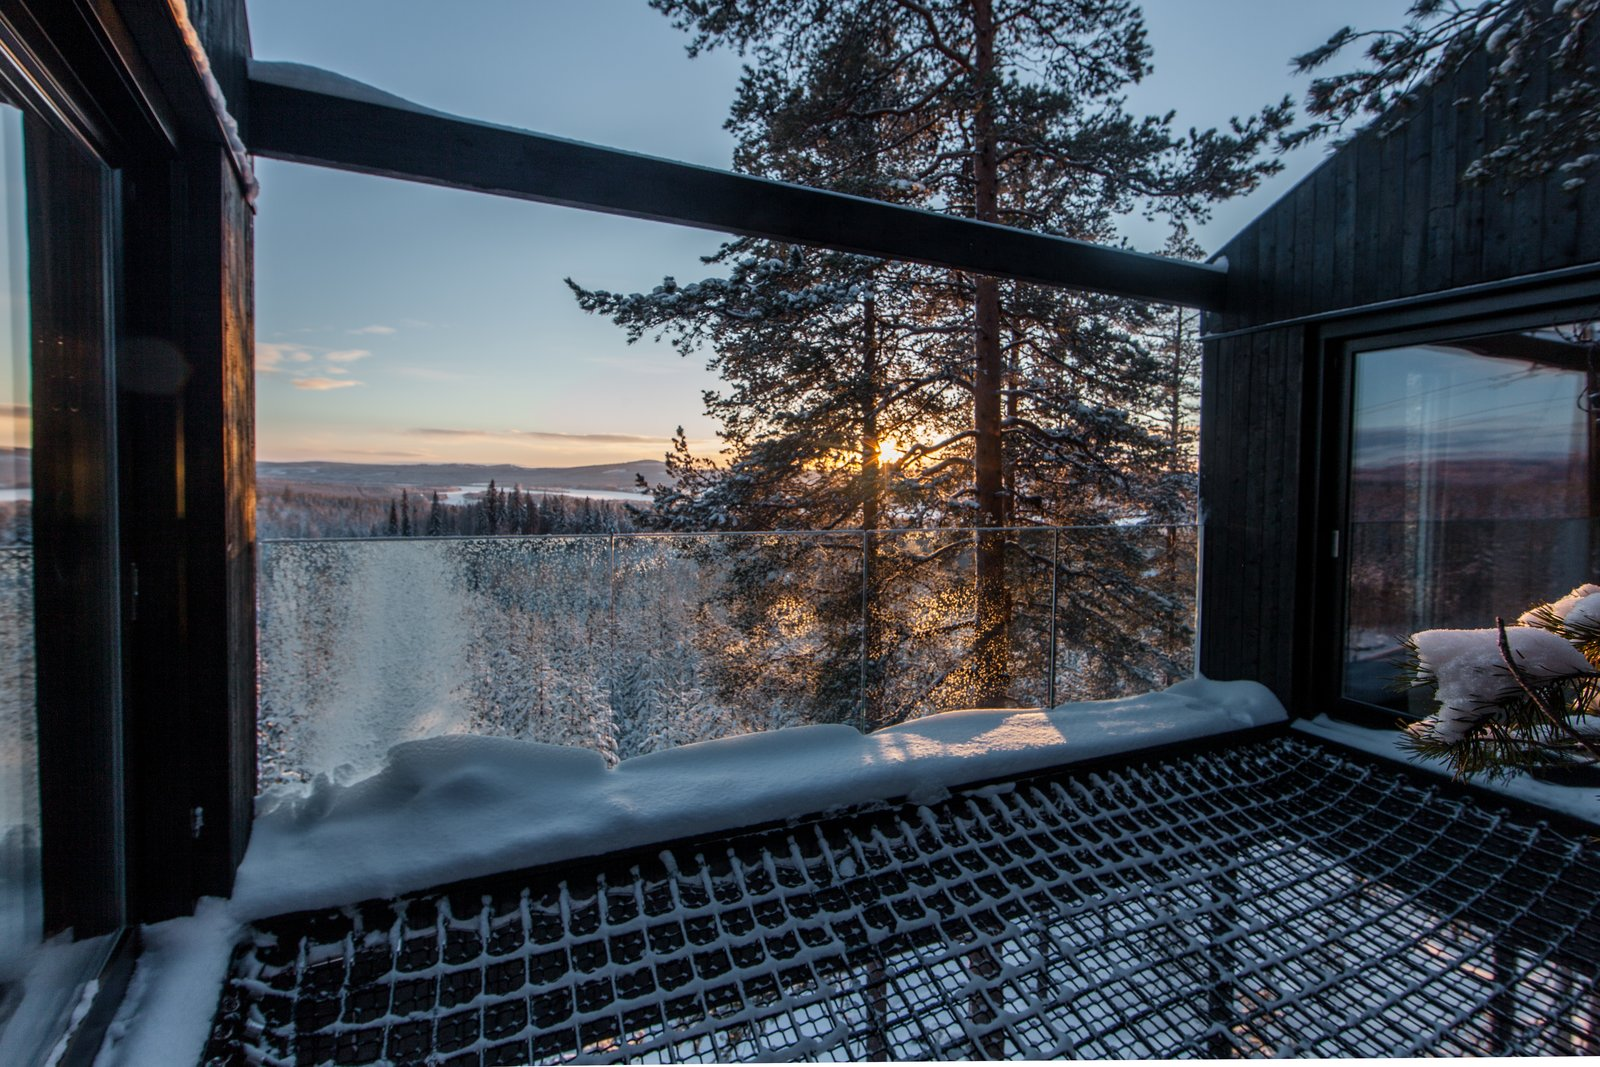 Exterior A double-layered net stretches between two bedrooms, providing an open terrace and a place to sleep under the night sky.  Photo 5 of 8 in Go Stargazing in Snøhetta's Towering Addition to Sweden's Treehotel